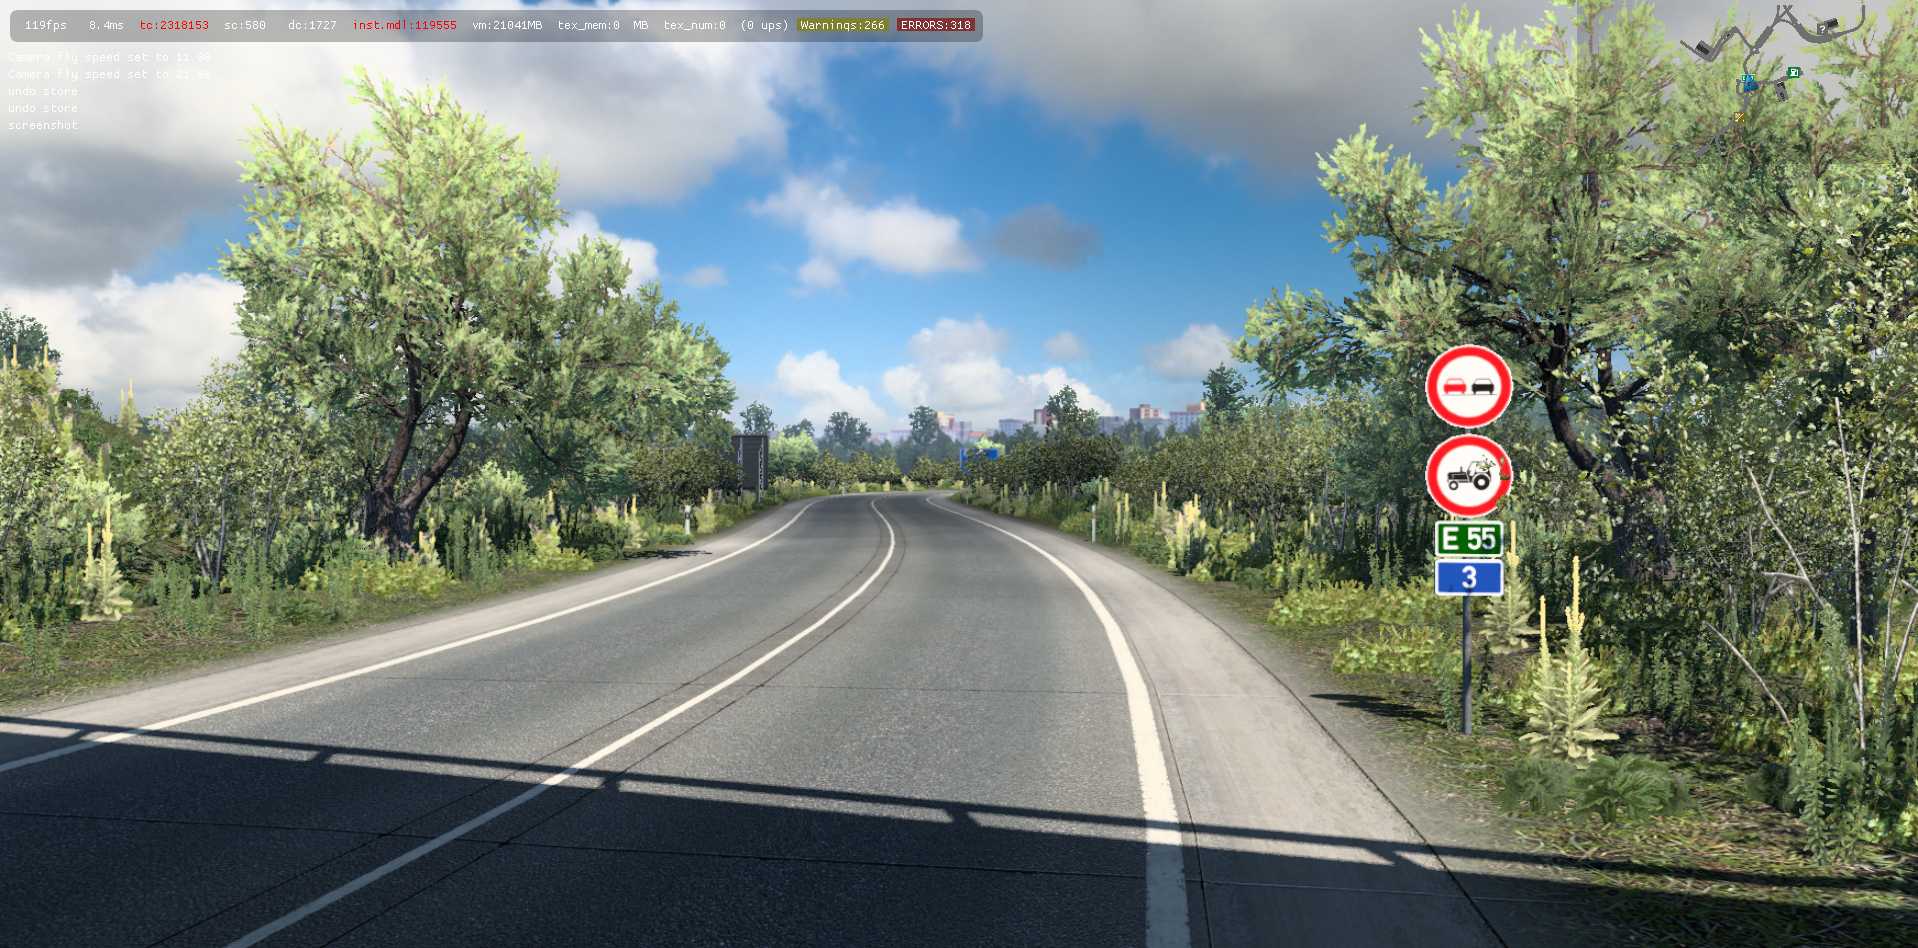 ets2_20210822_162705_00.png